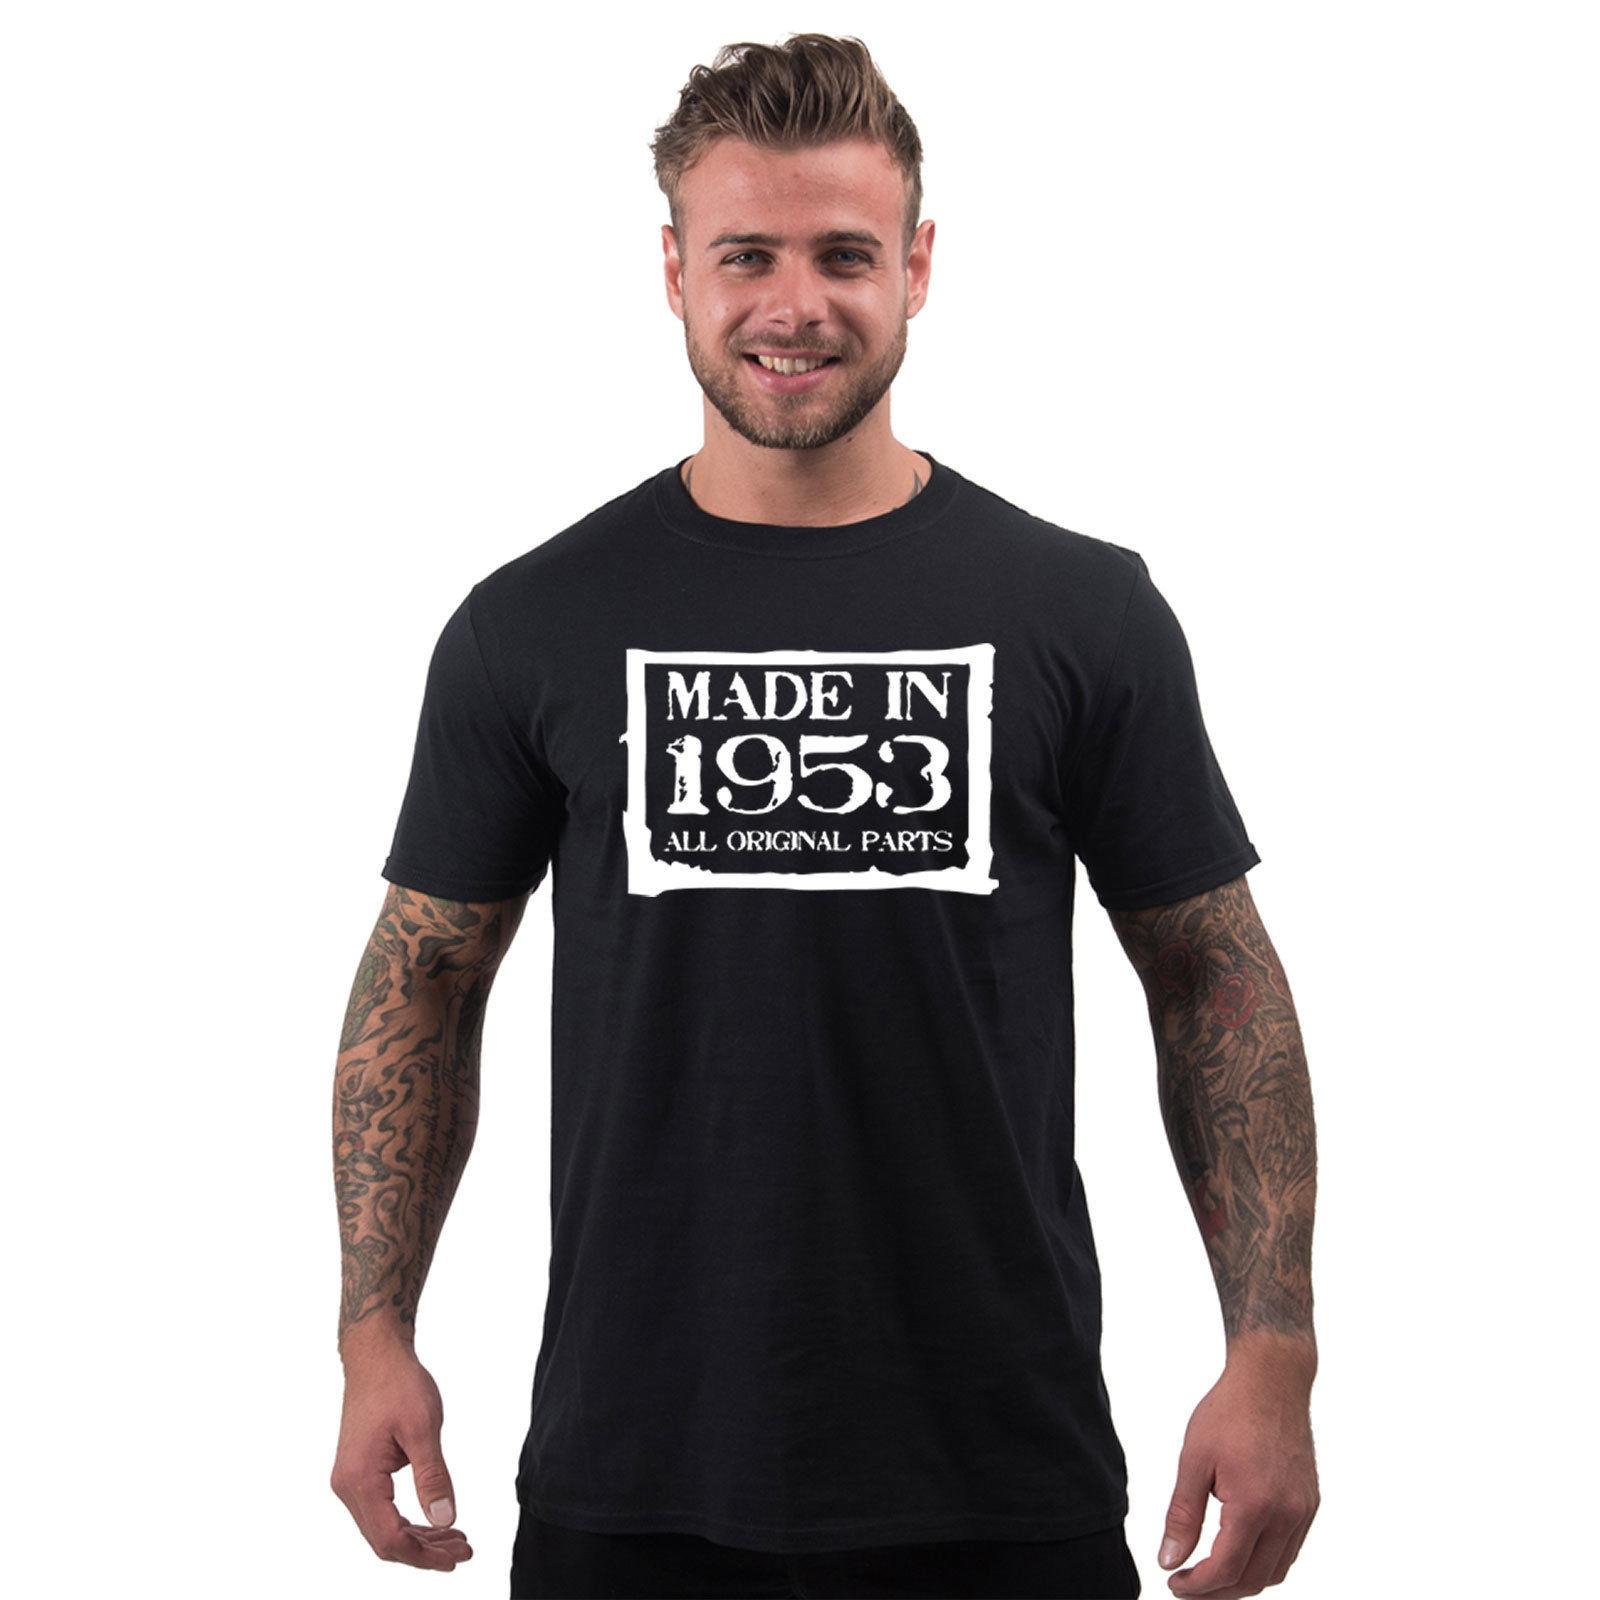 65th Birthday Gifts For Men Made In 1953 Novelty Gift Boxed Mens T Shirt Cool Casual Pride Unisex Tee Shirts From Cls6688521